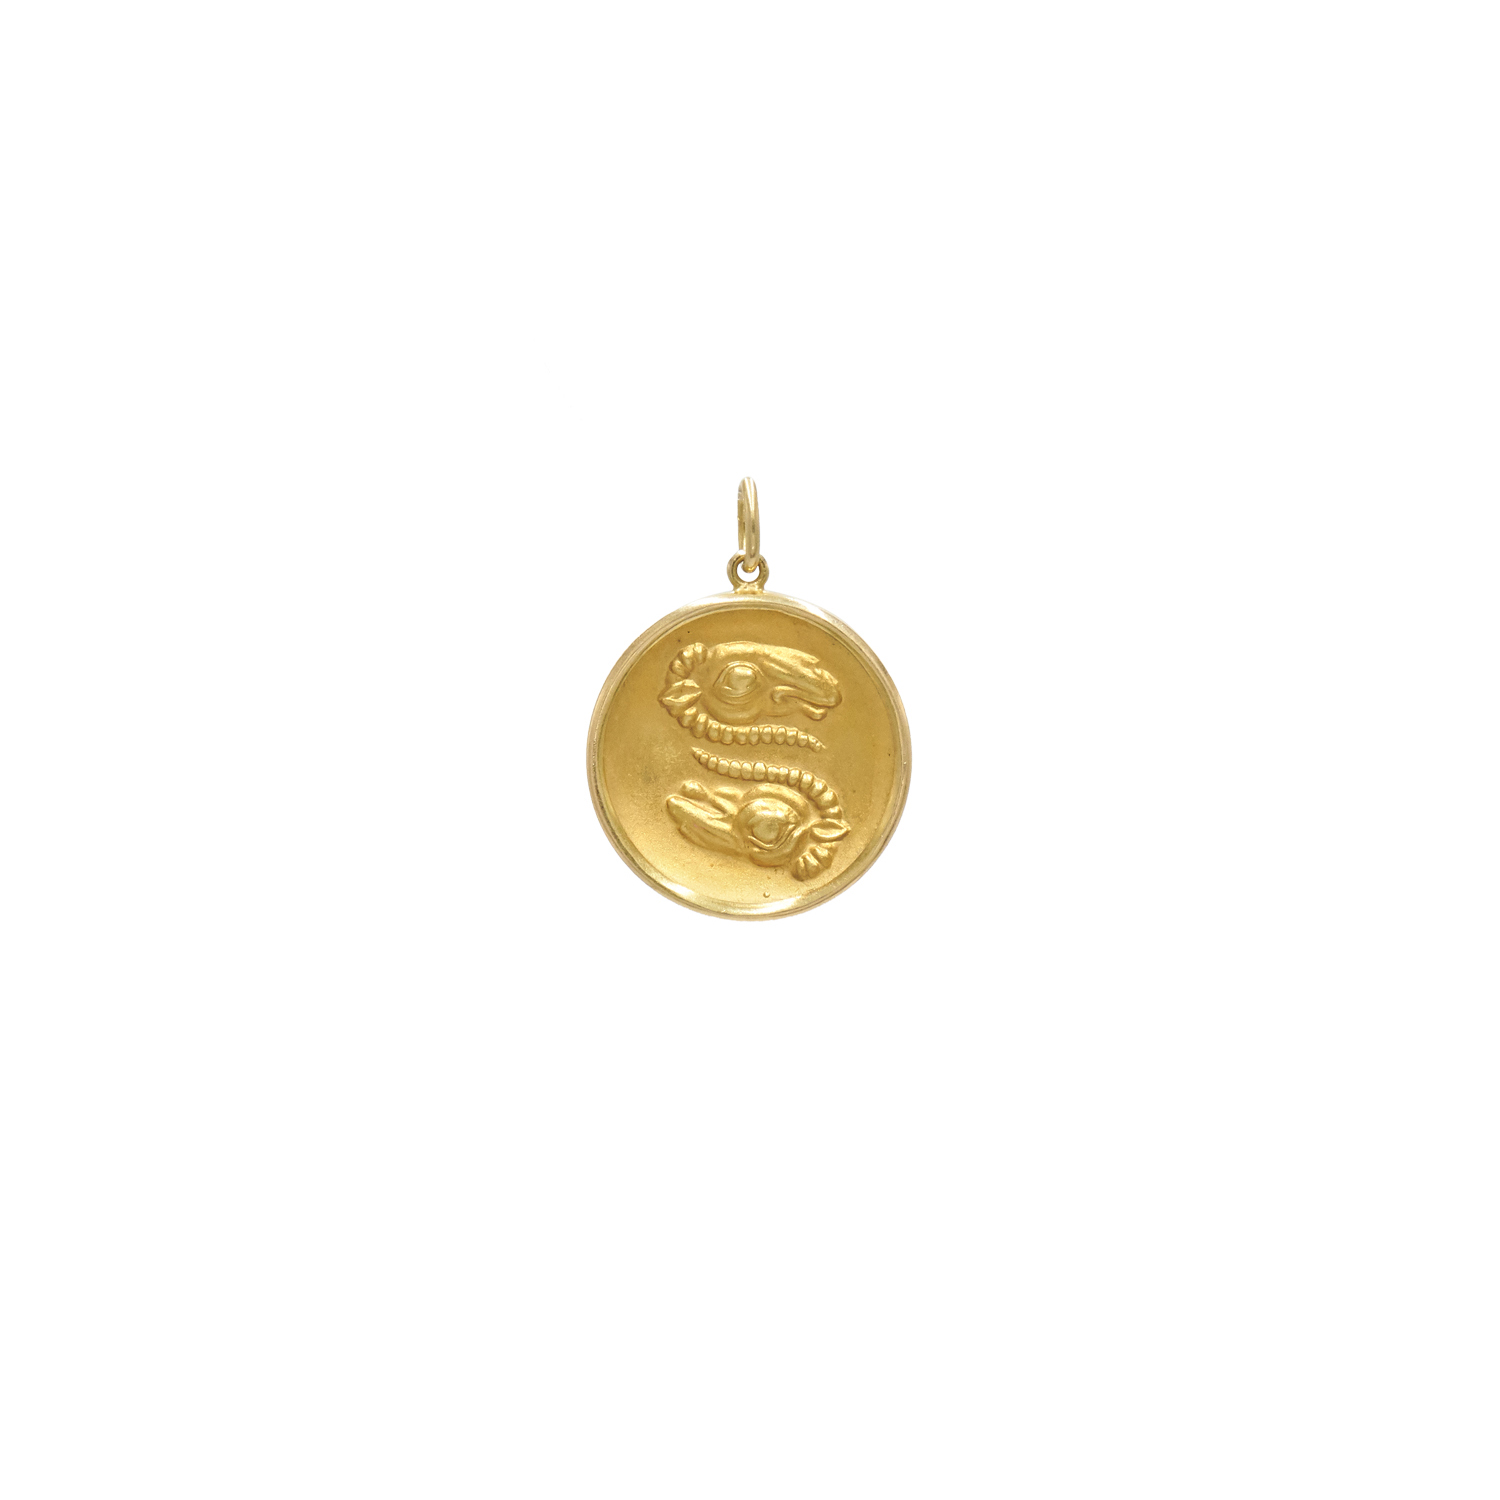 Lalaounis 18K Yellow Gold Zodiac Ares Pendant, Serial FL39636